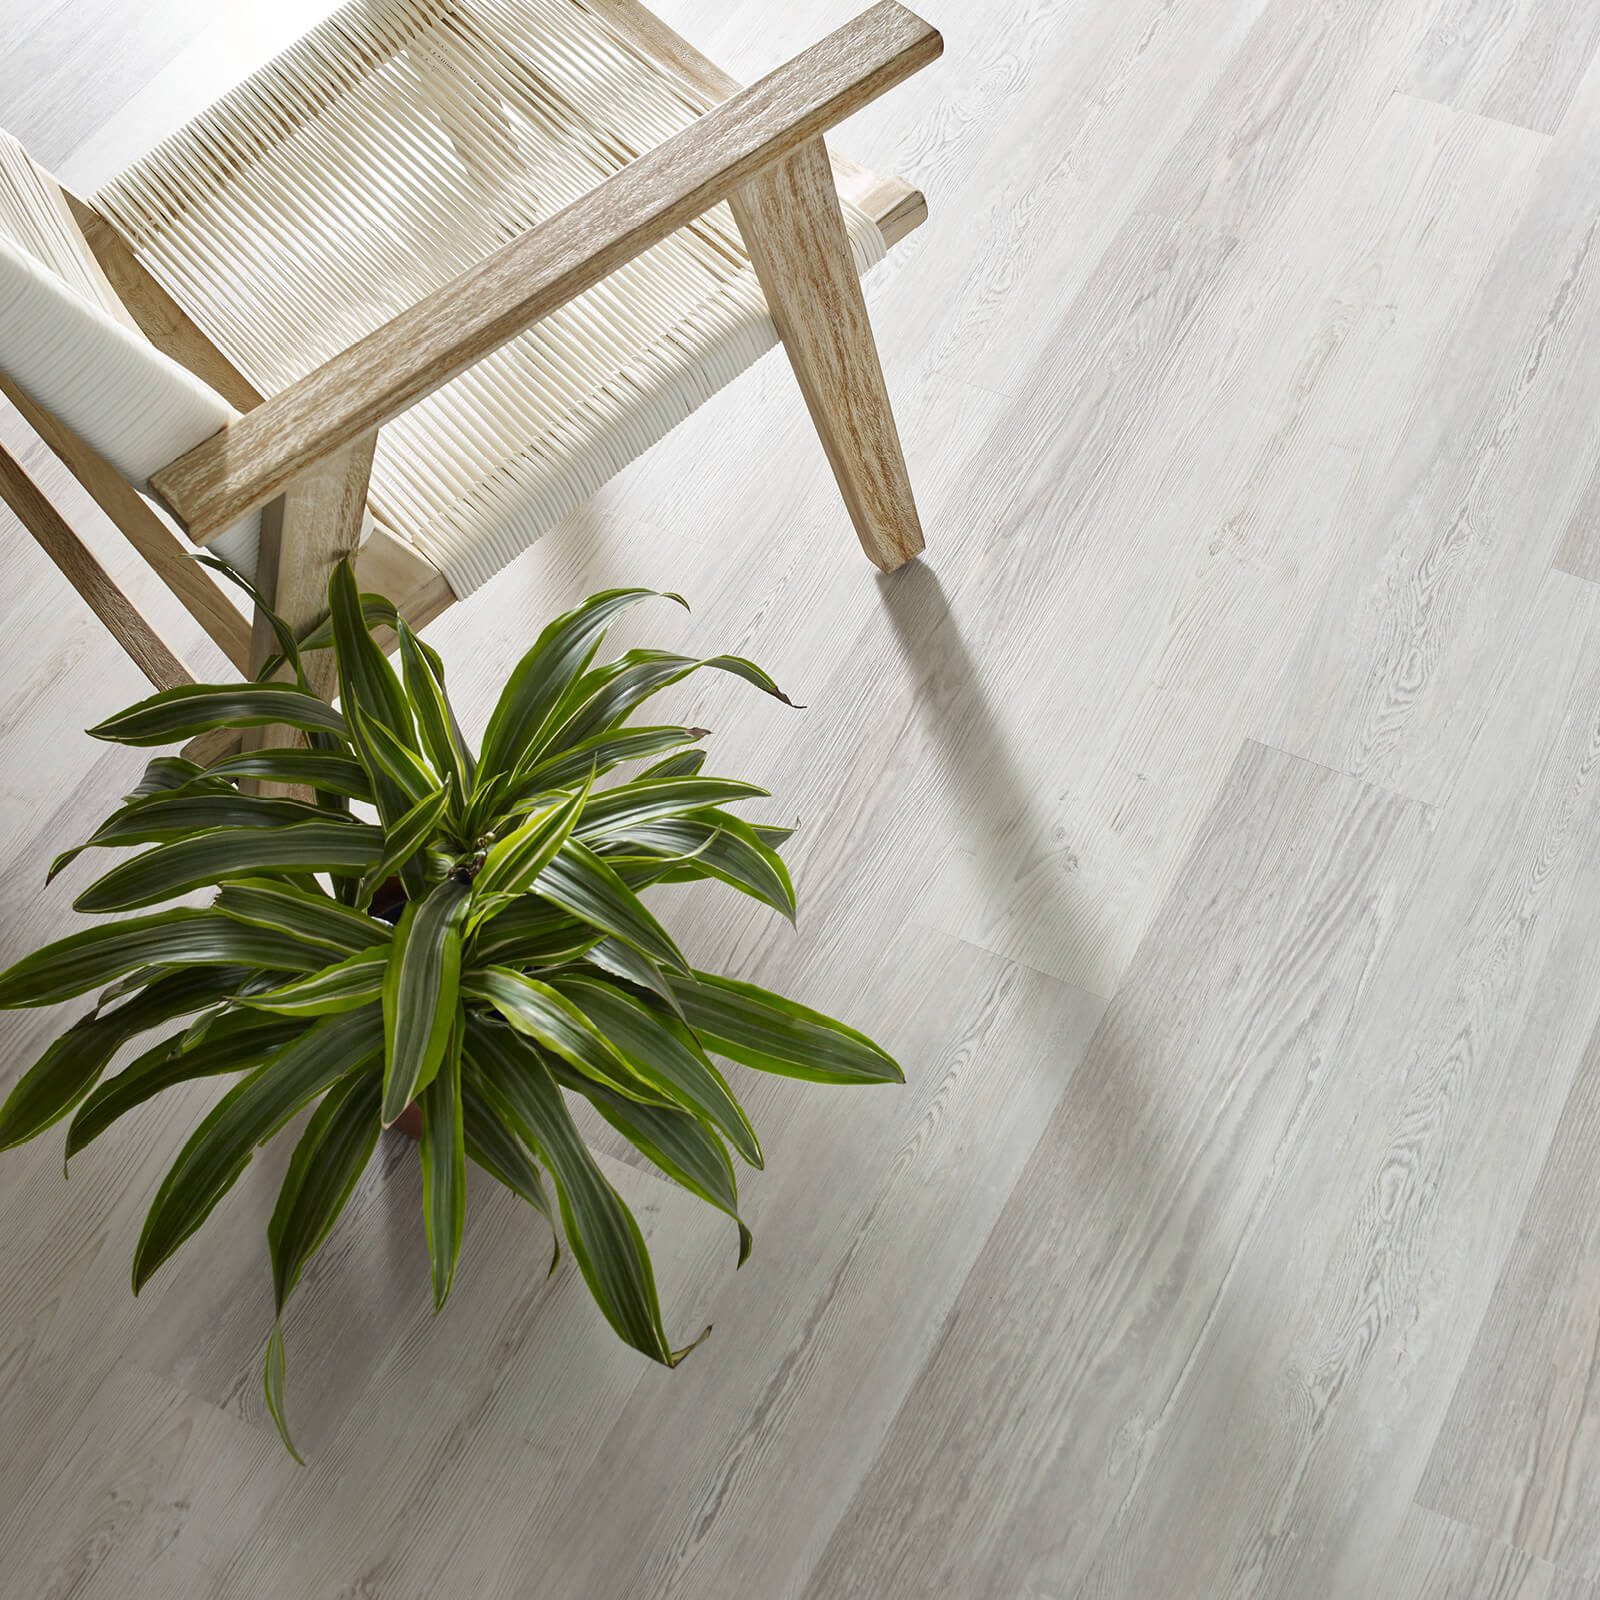 Shaw vinyl flooring | Great Western Flooring Co.